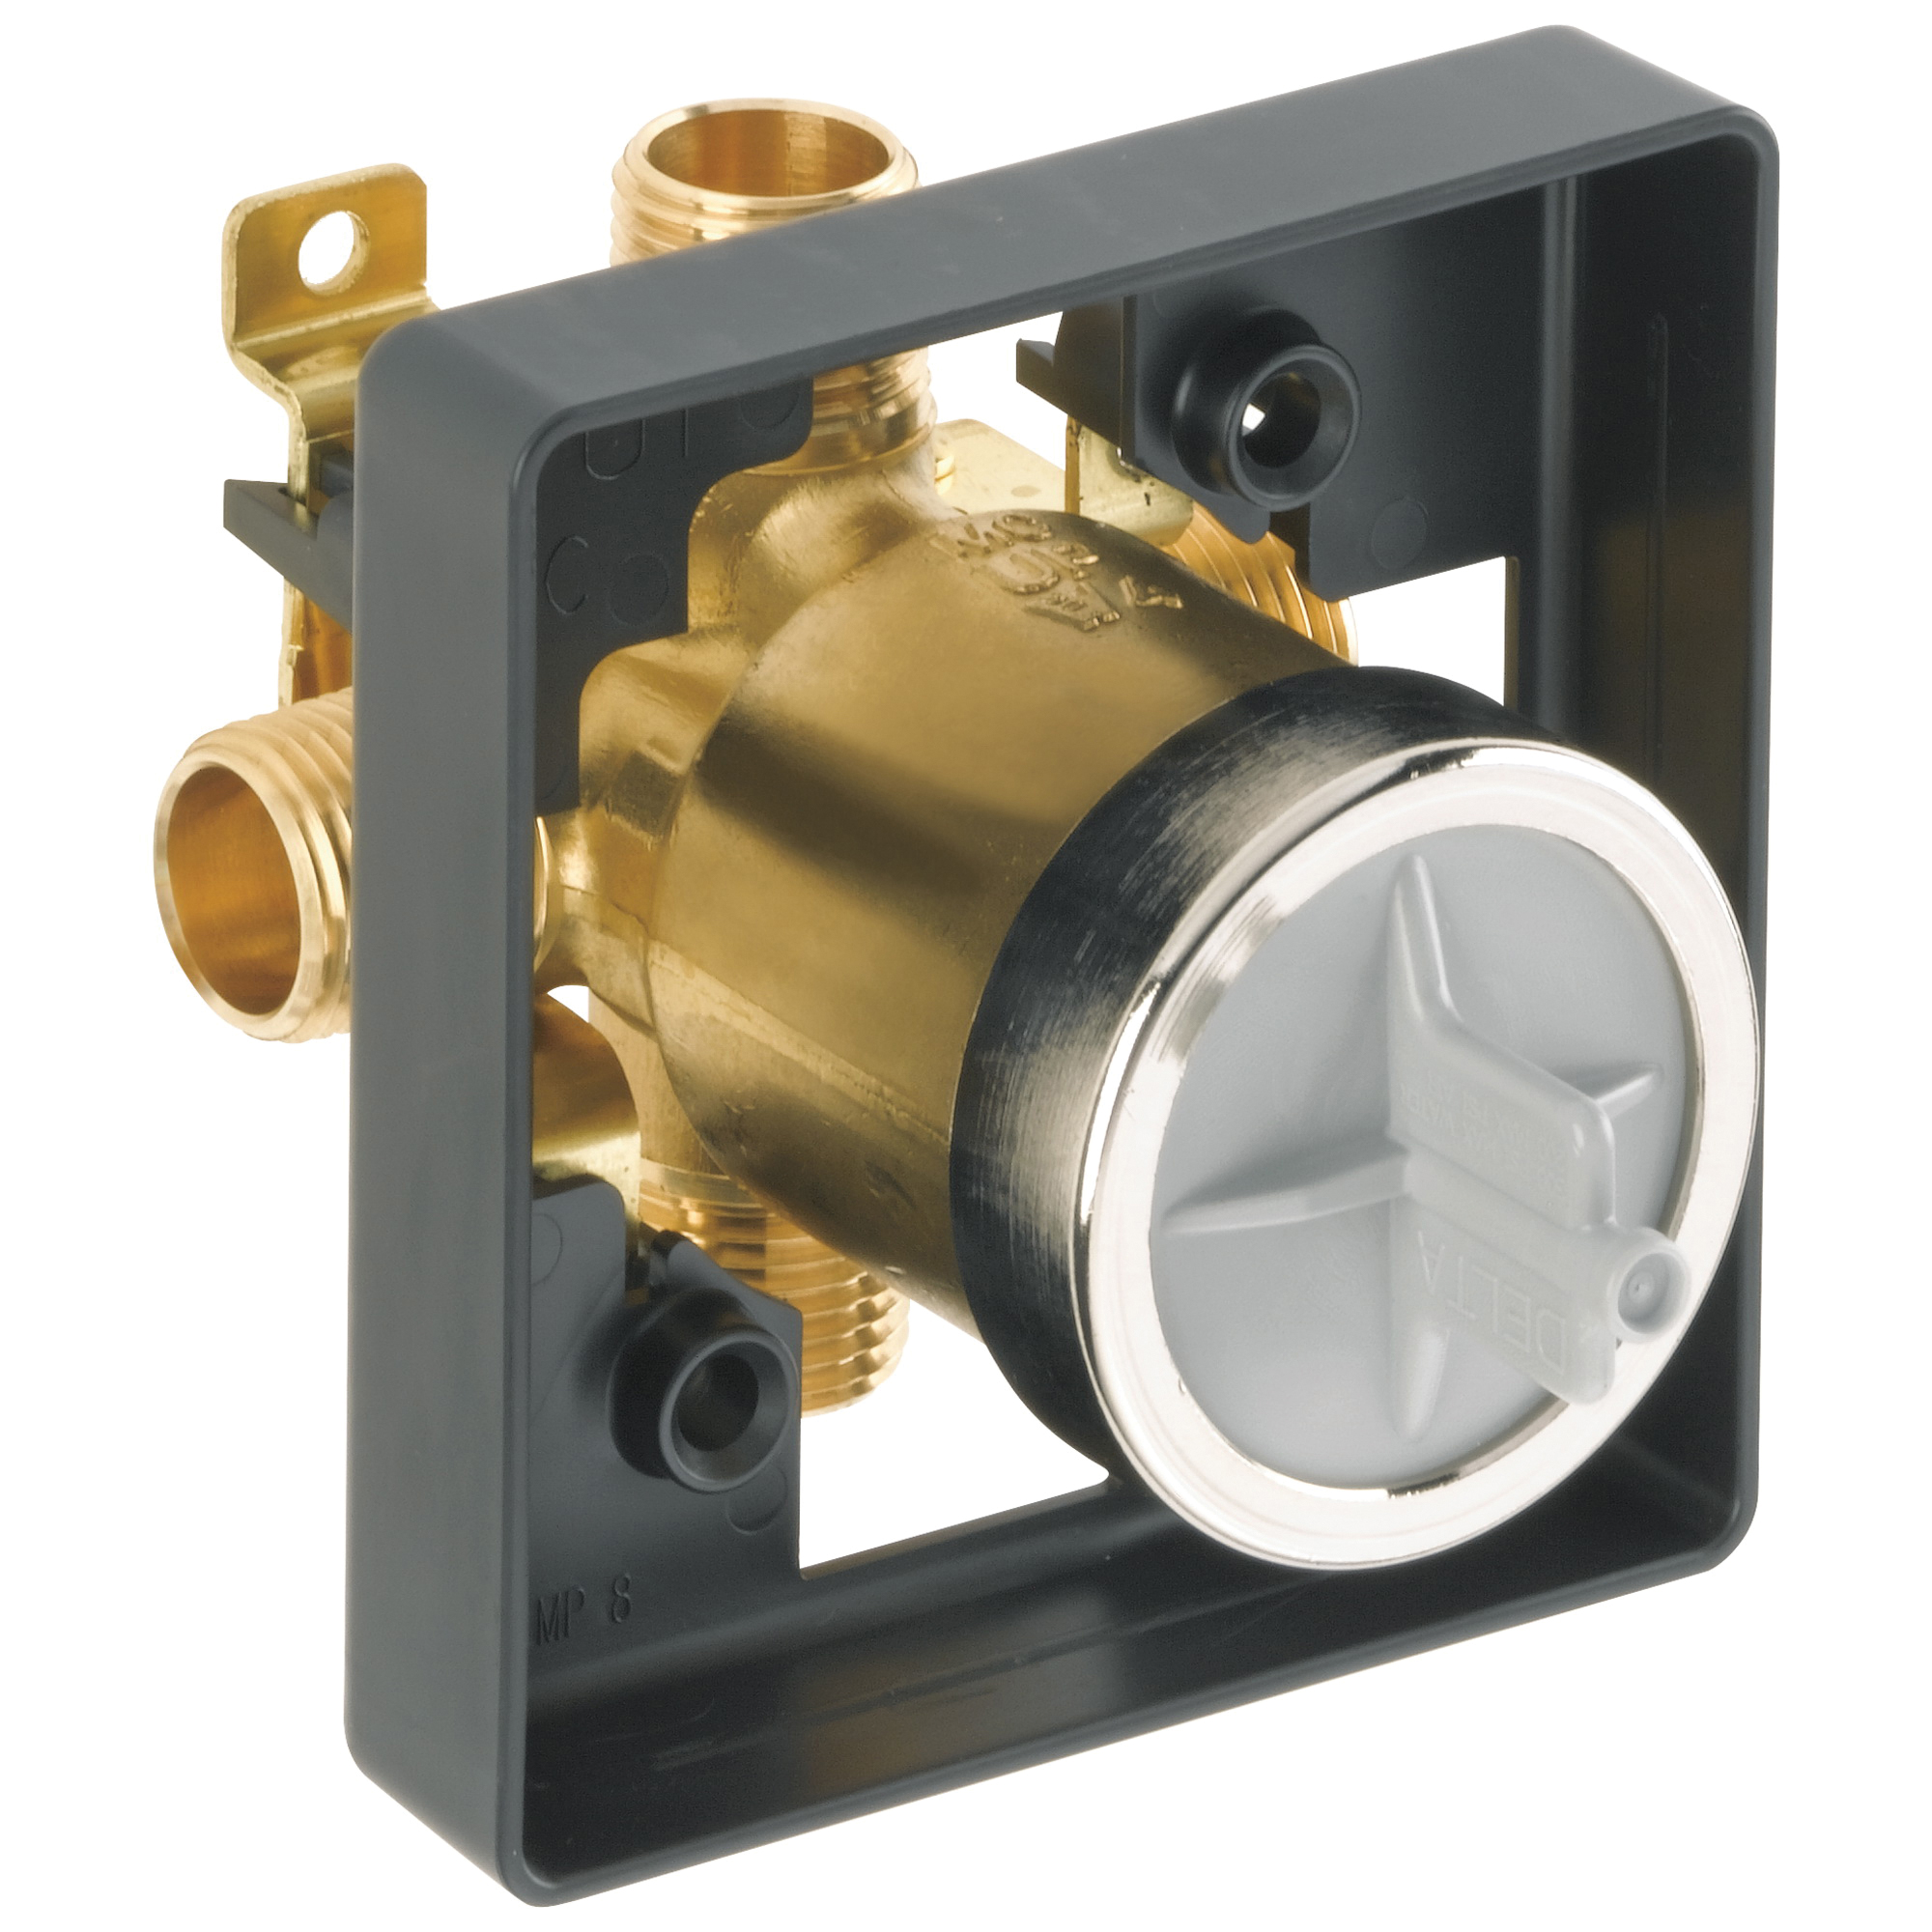 DELTA® R10000-UNBX Universal Tub and Shower Rough-In Valve Body, Forged Brass Body, Domestic